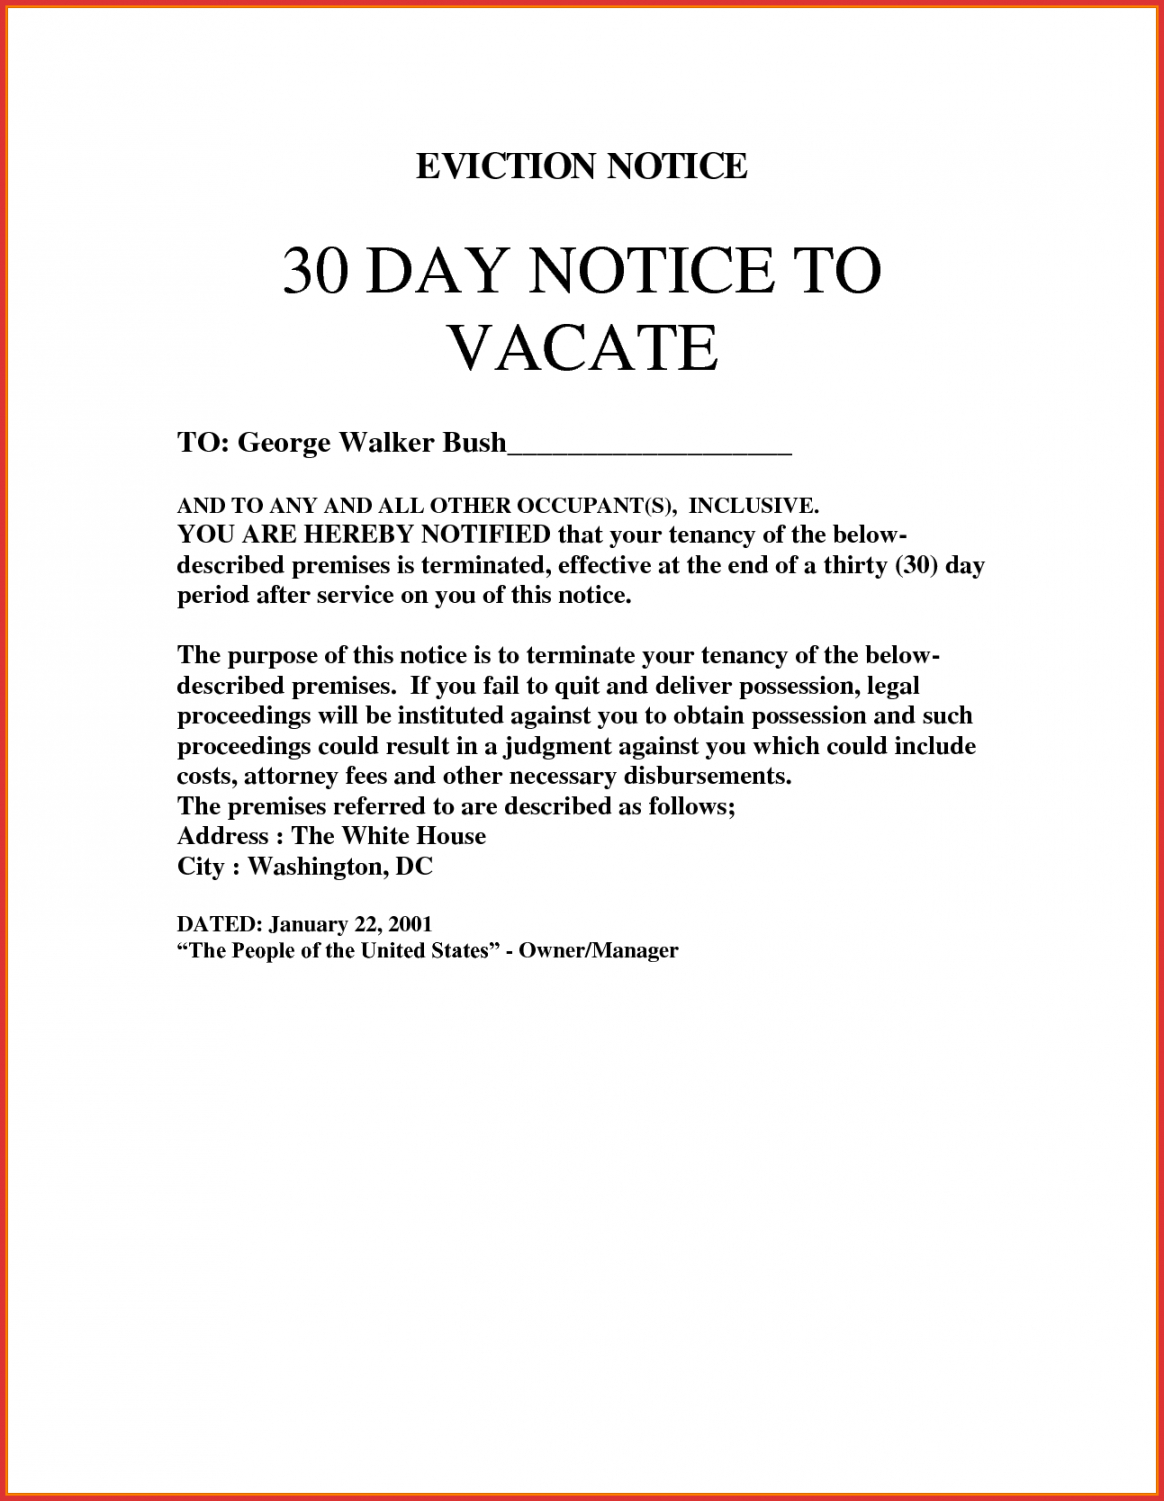 Letter From Tenant To Landlord For 30 Day Notice from cashbackdiscountrealestate.com